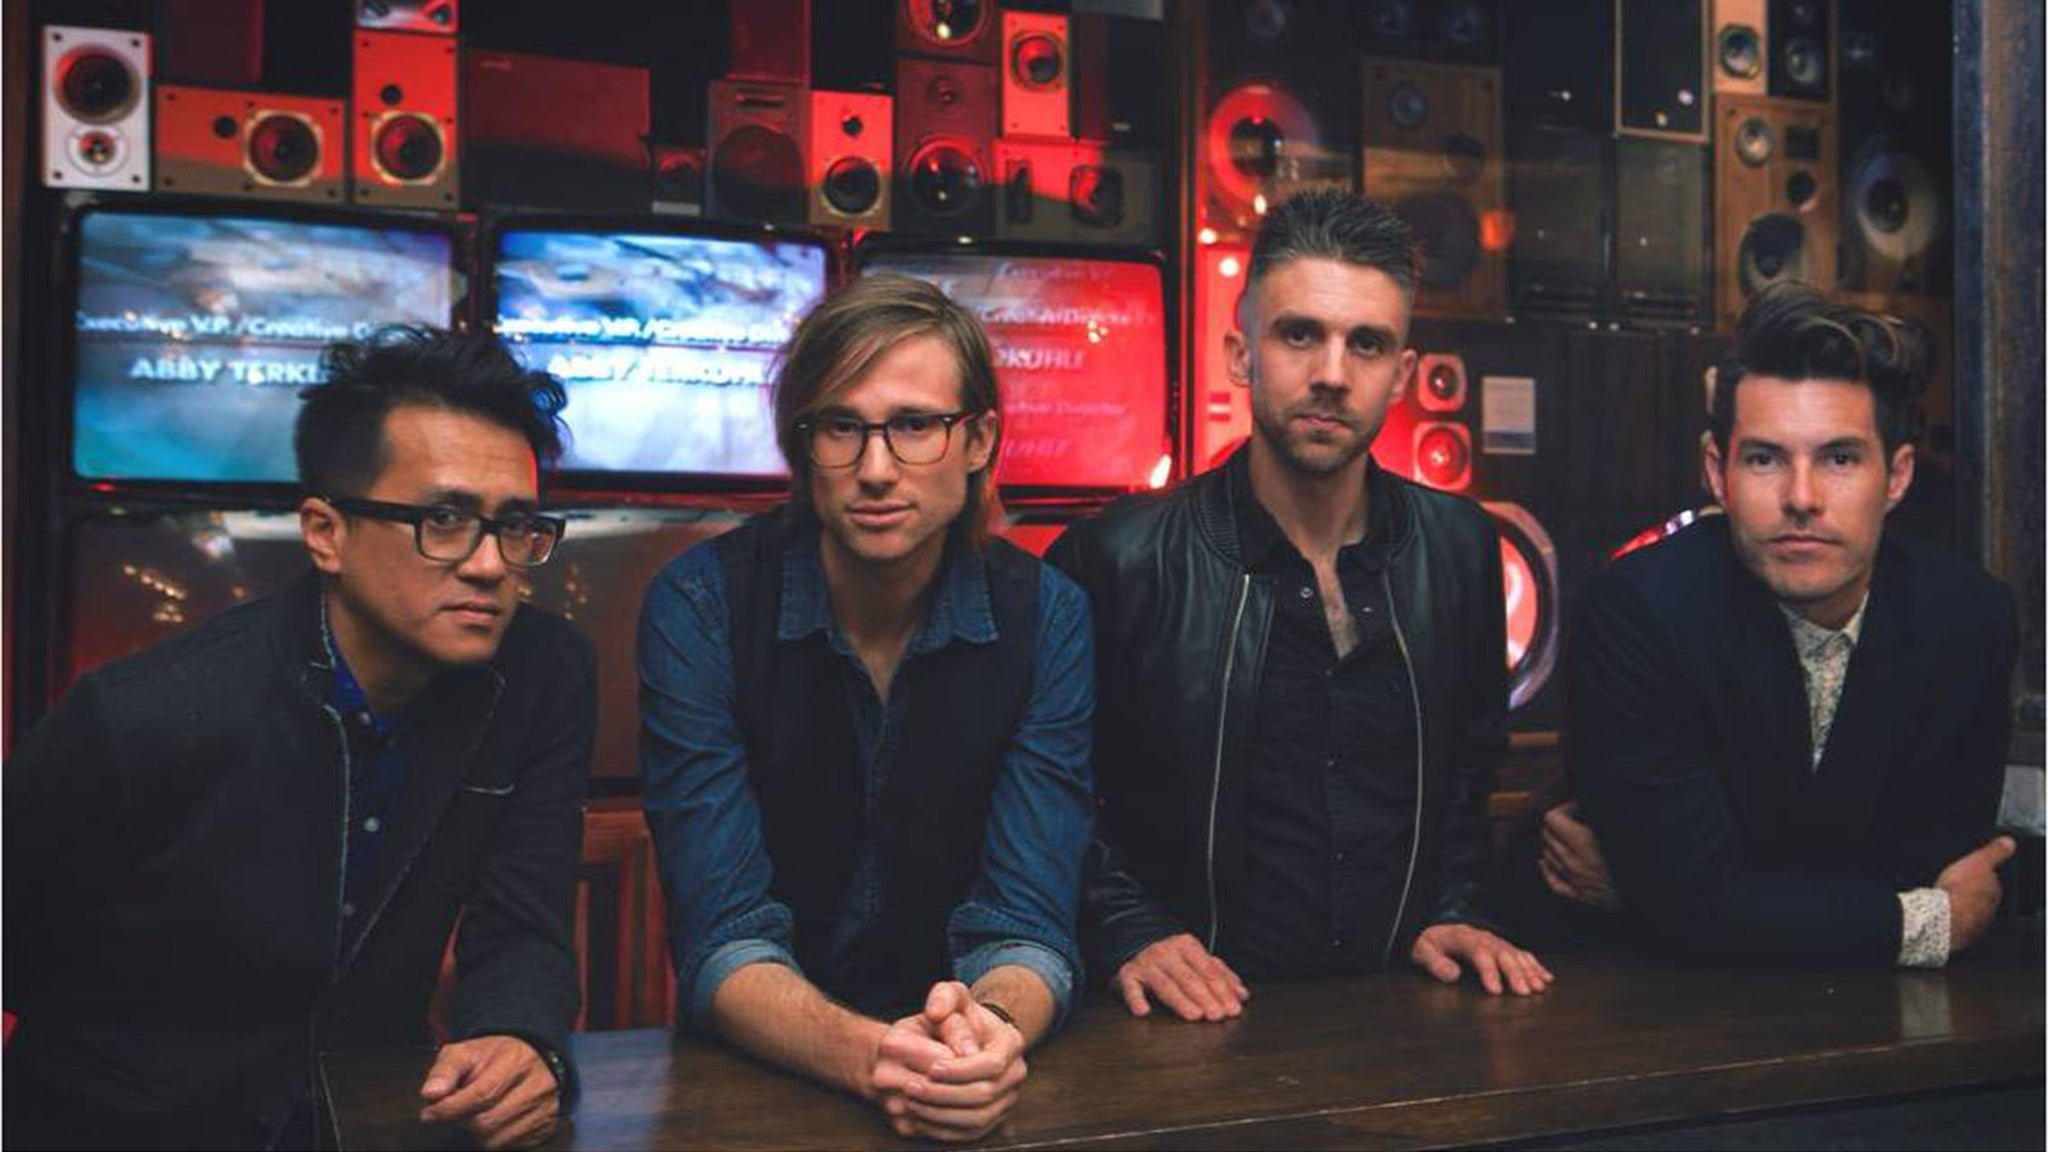 92.5 The River Presents: Saint Motel at Royale Boston